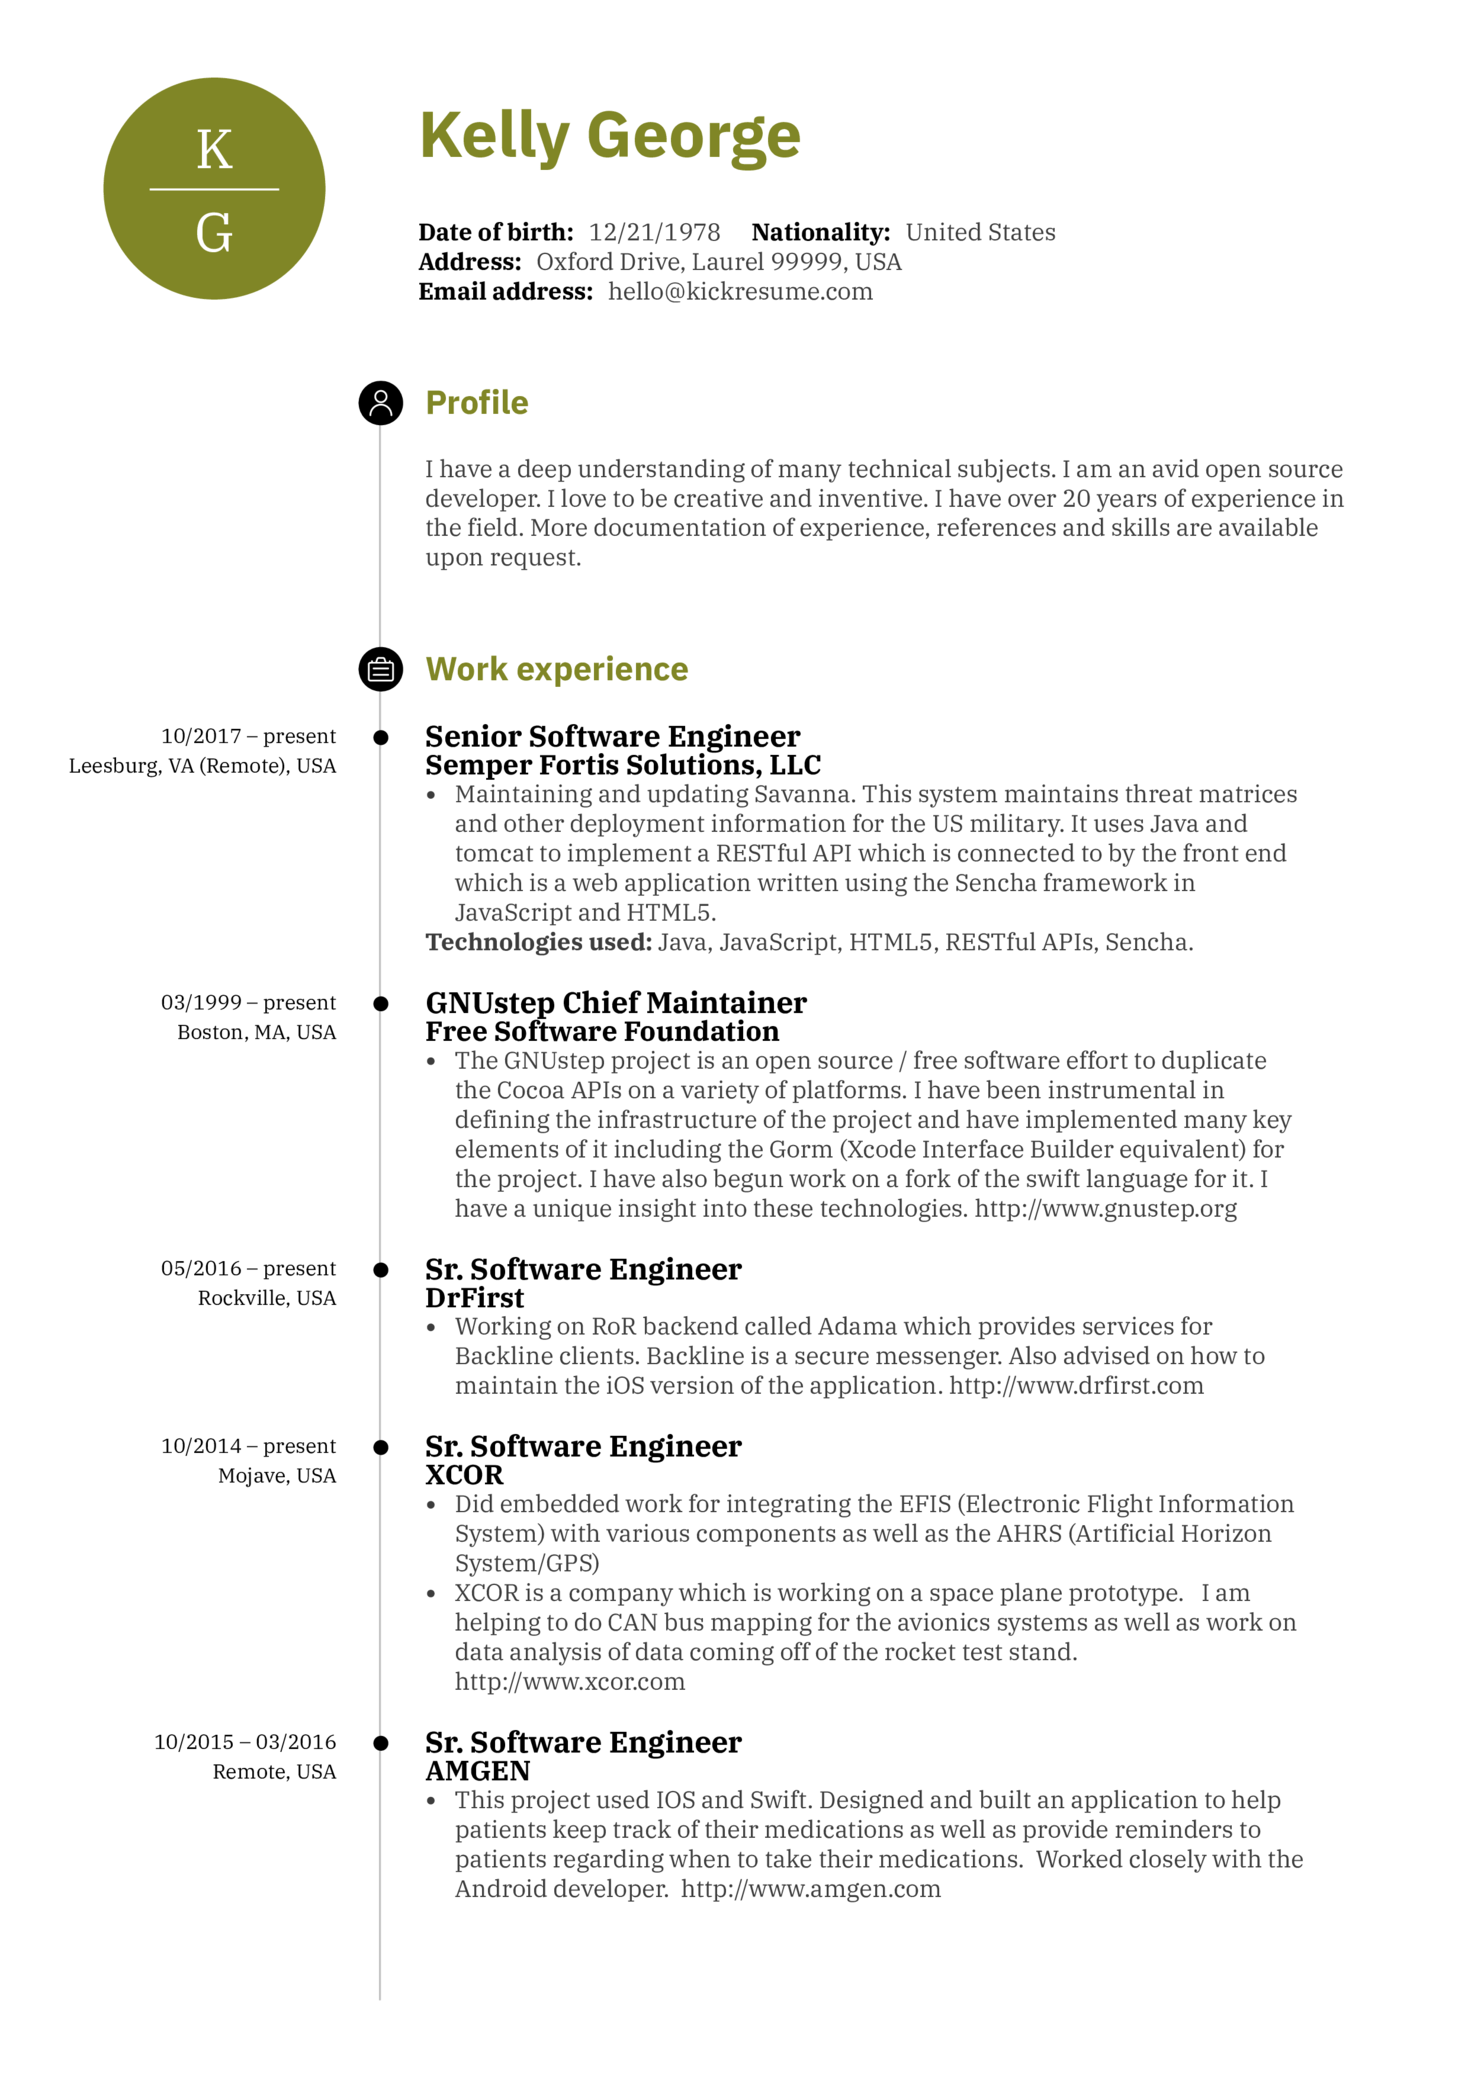 resume examples by real people senior software engineer resume sample kickresume. Black Bedroom Furniture Sets. Home Design Ideas